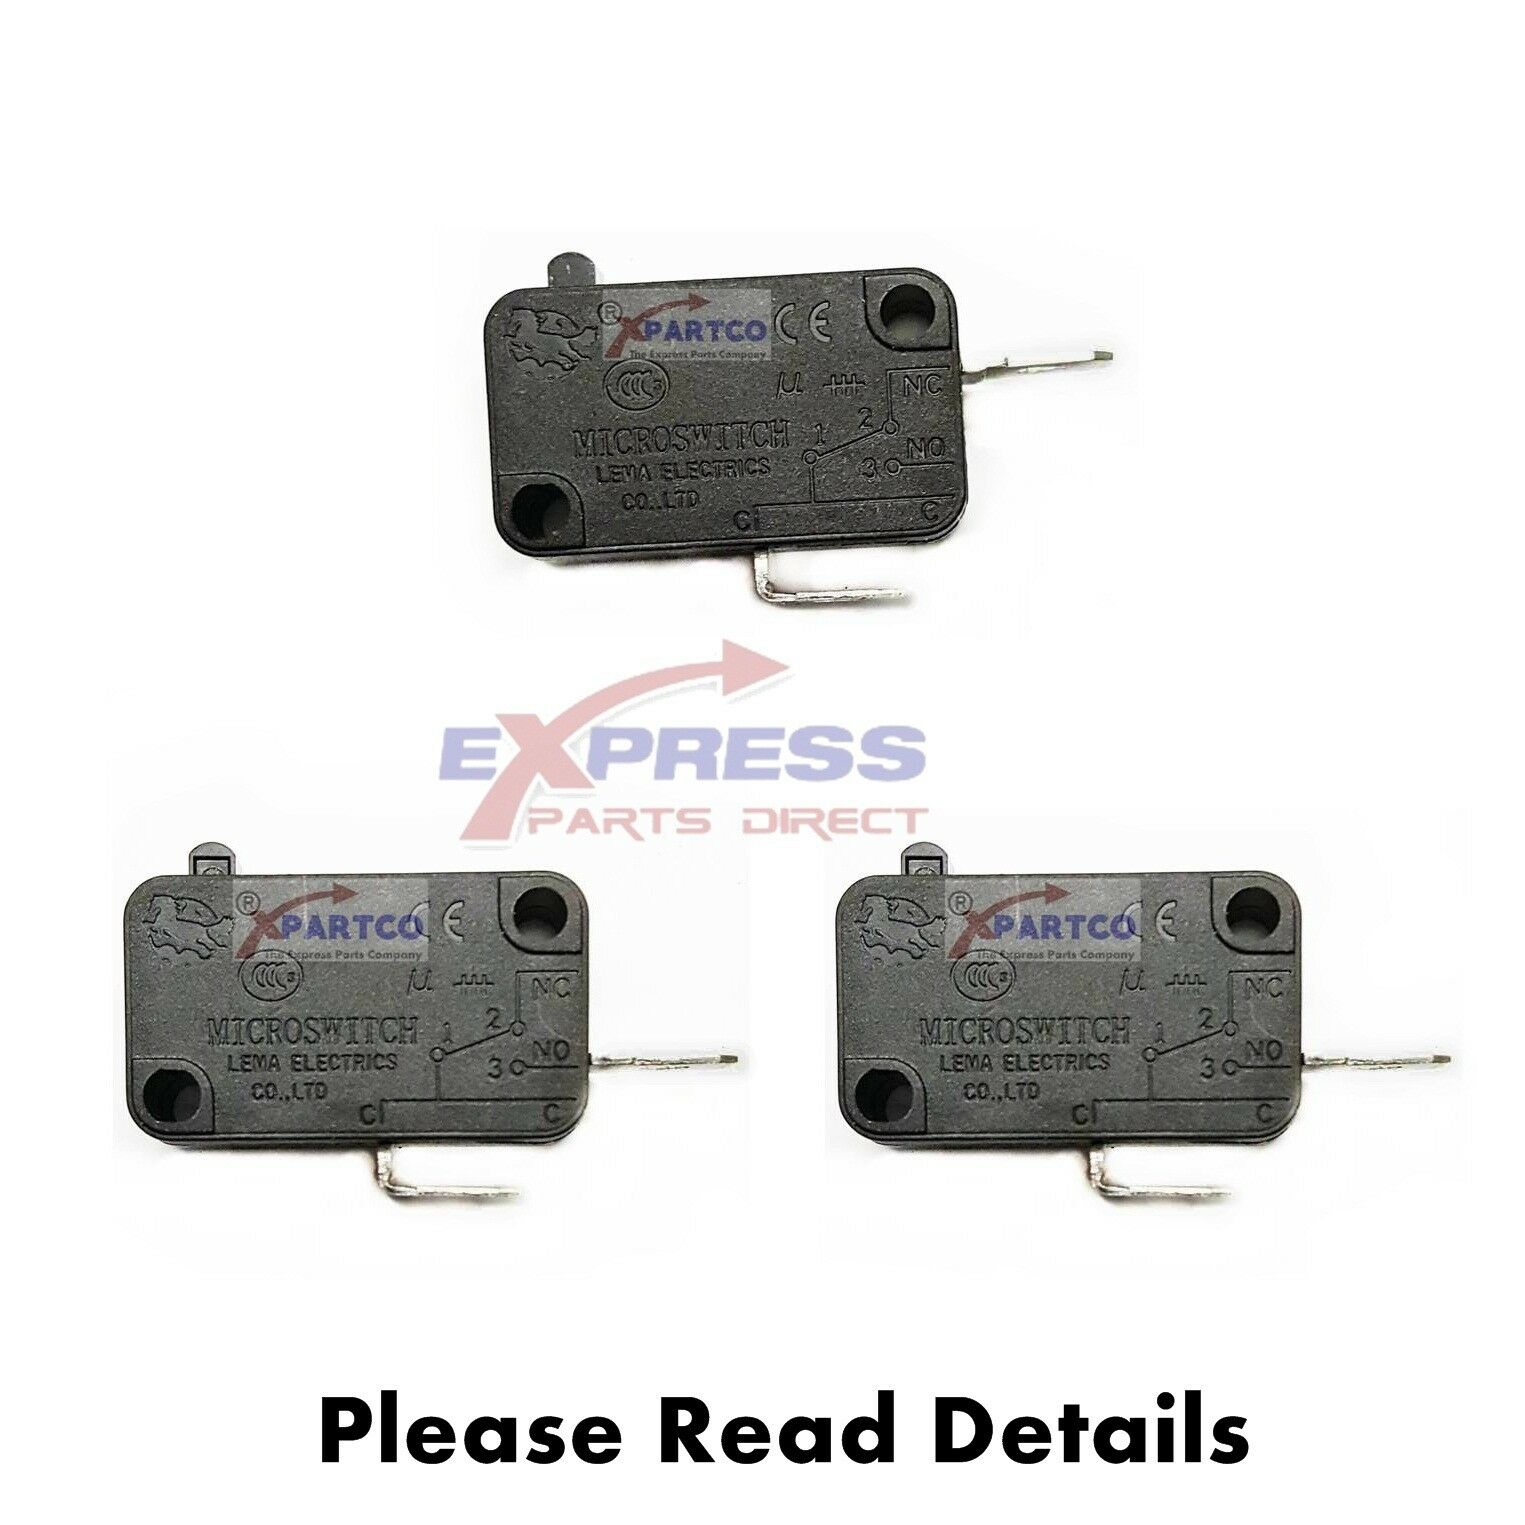 EXPMS33 Microwave Oven Door Set. Replaces WB24X823, WB24X830